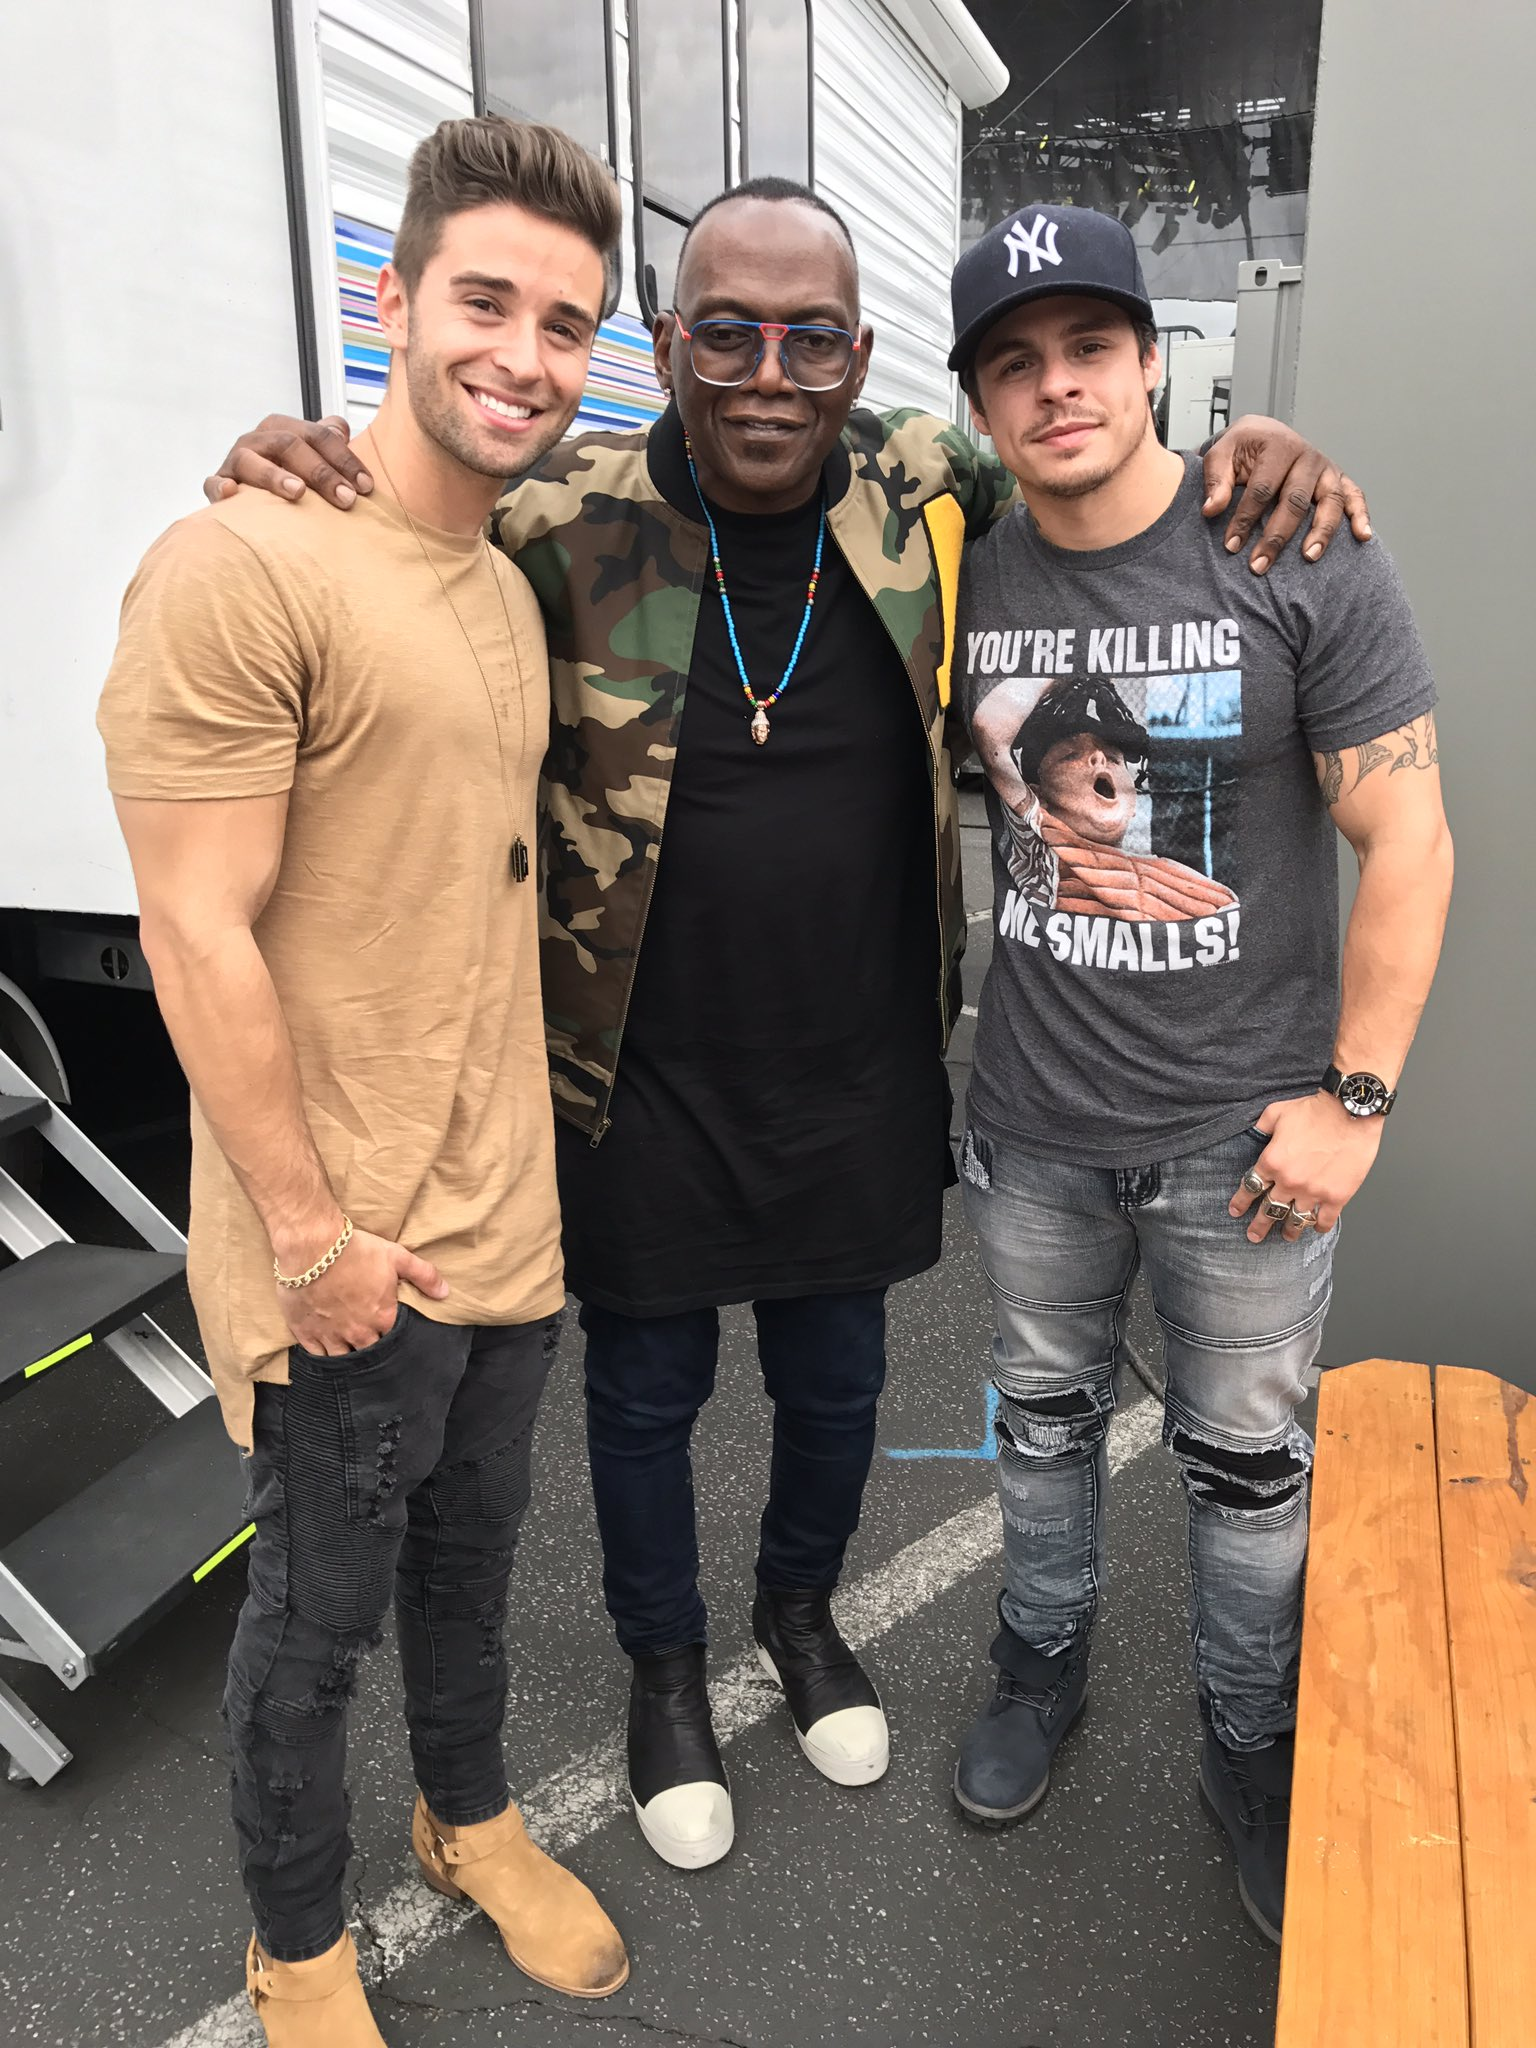 chilling with @jakemiller and @BEAUcasperSMART #EWPopFest https://t.co/Owi0CT2Swm